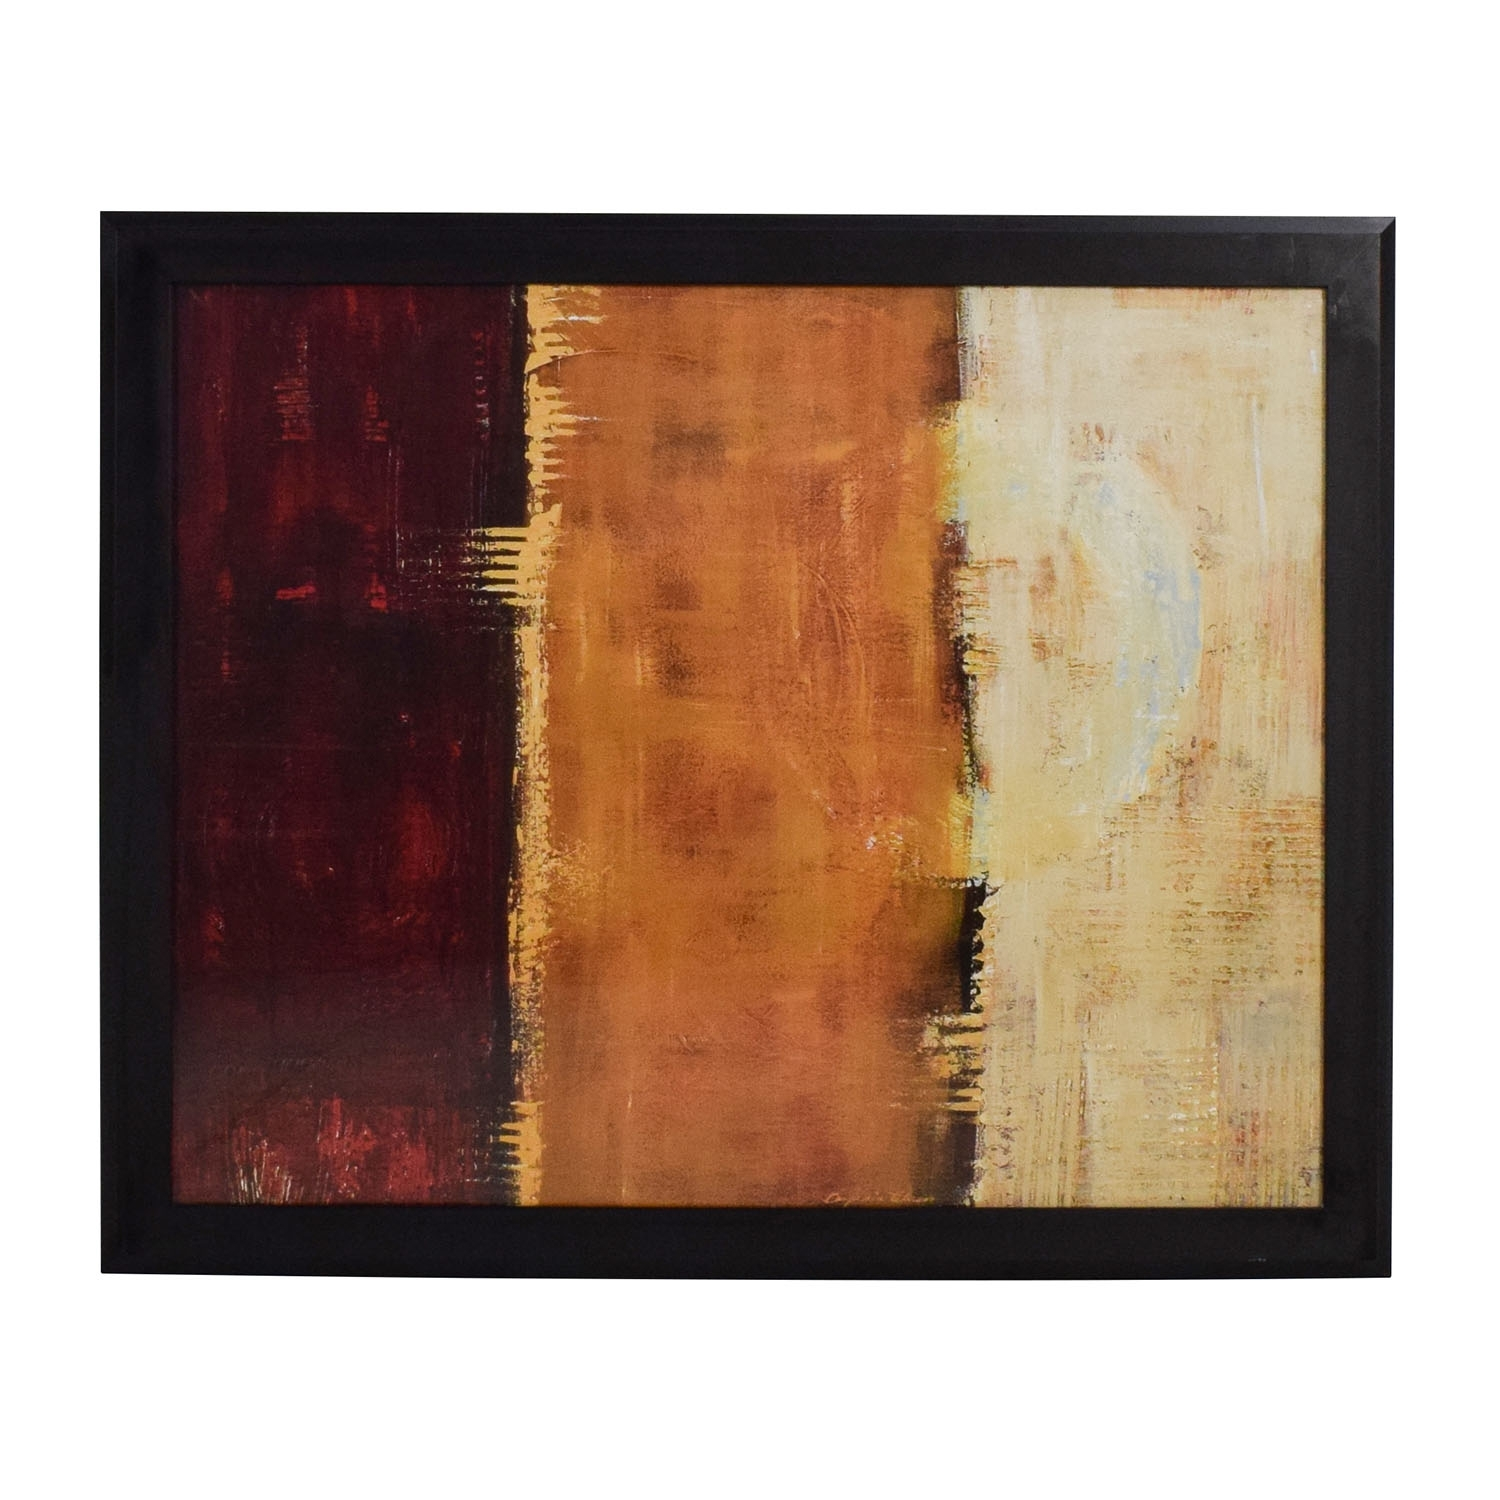 88% Off - Z Gallerie Z Gallerie Framed Canvas Red Orange Yellow Wall with regard to Latest Z Gallerie Wall Art